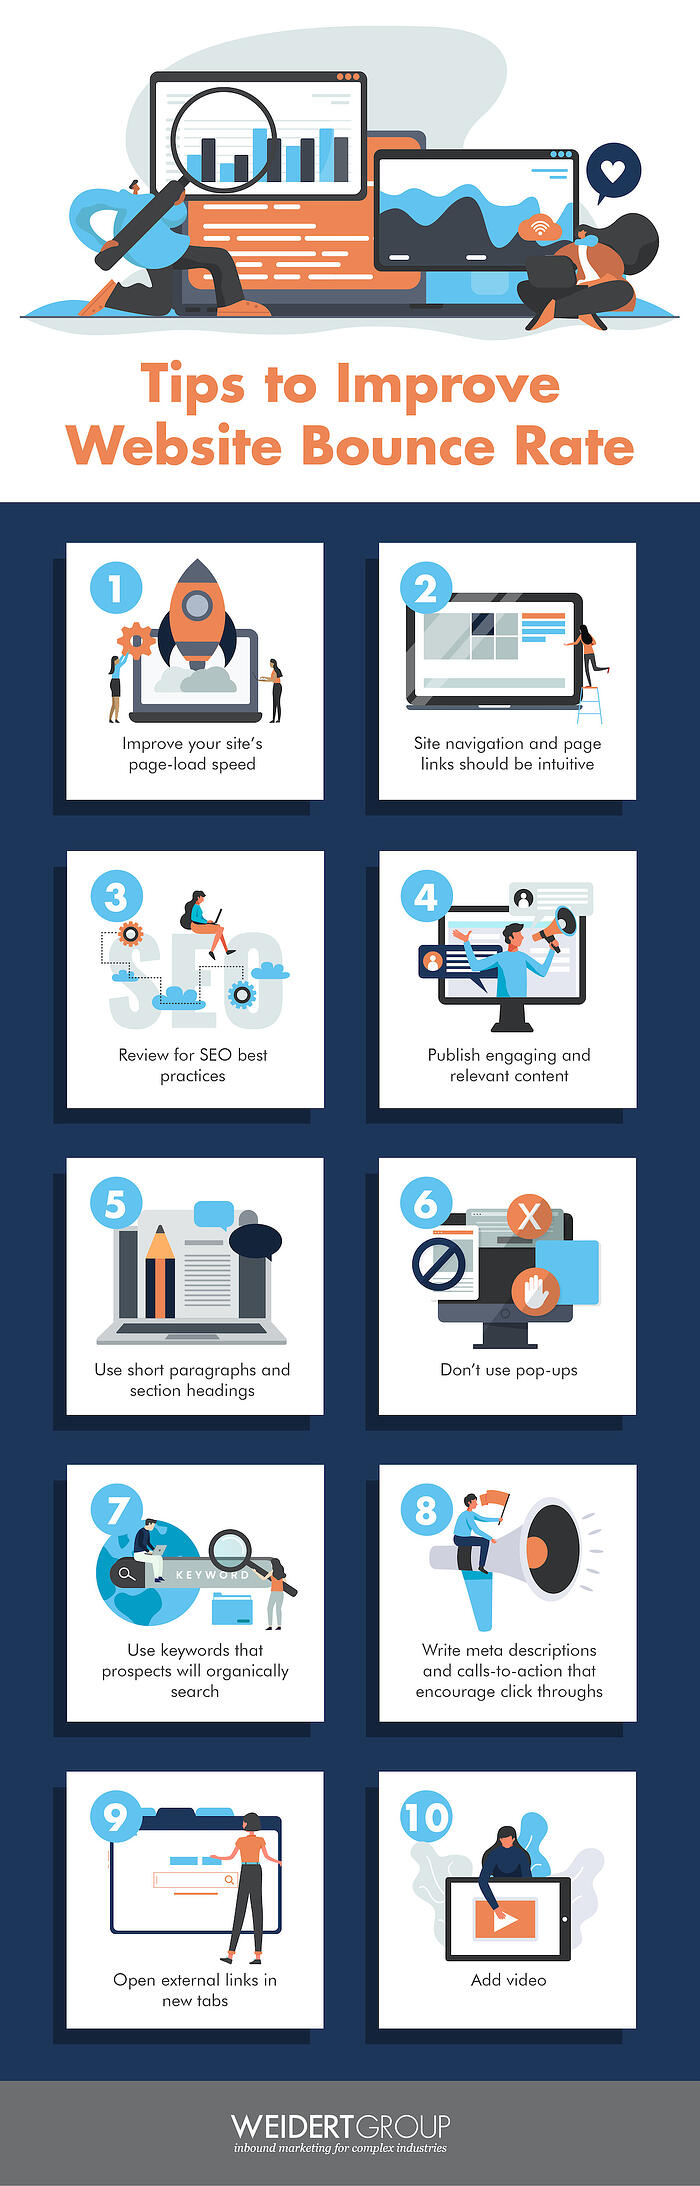 improve-bounce-rate-infographic